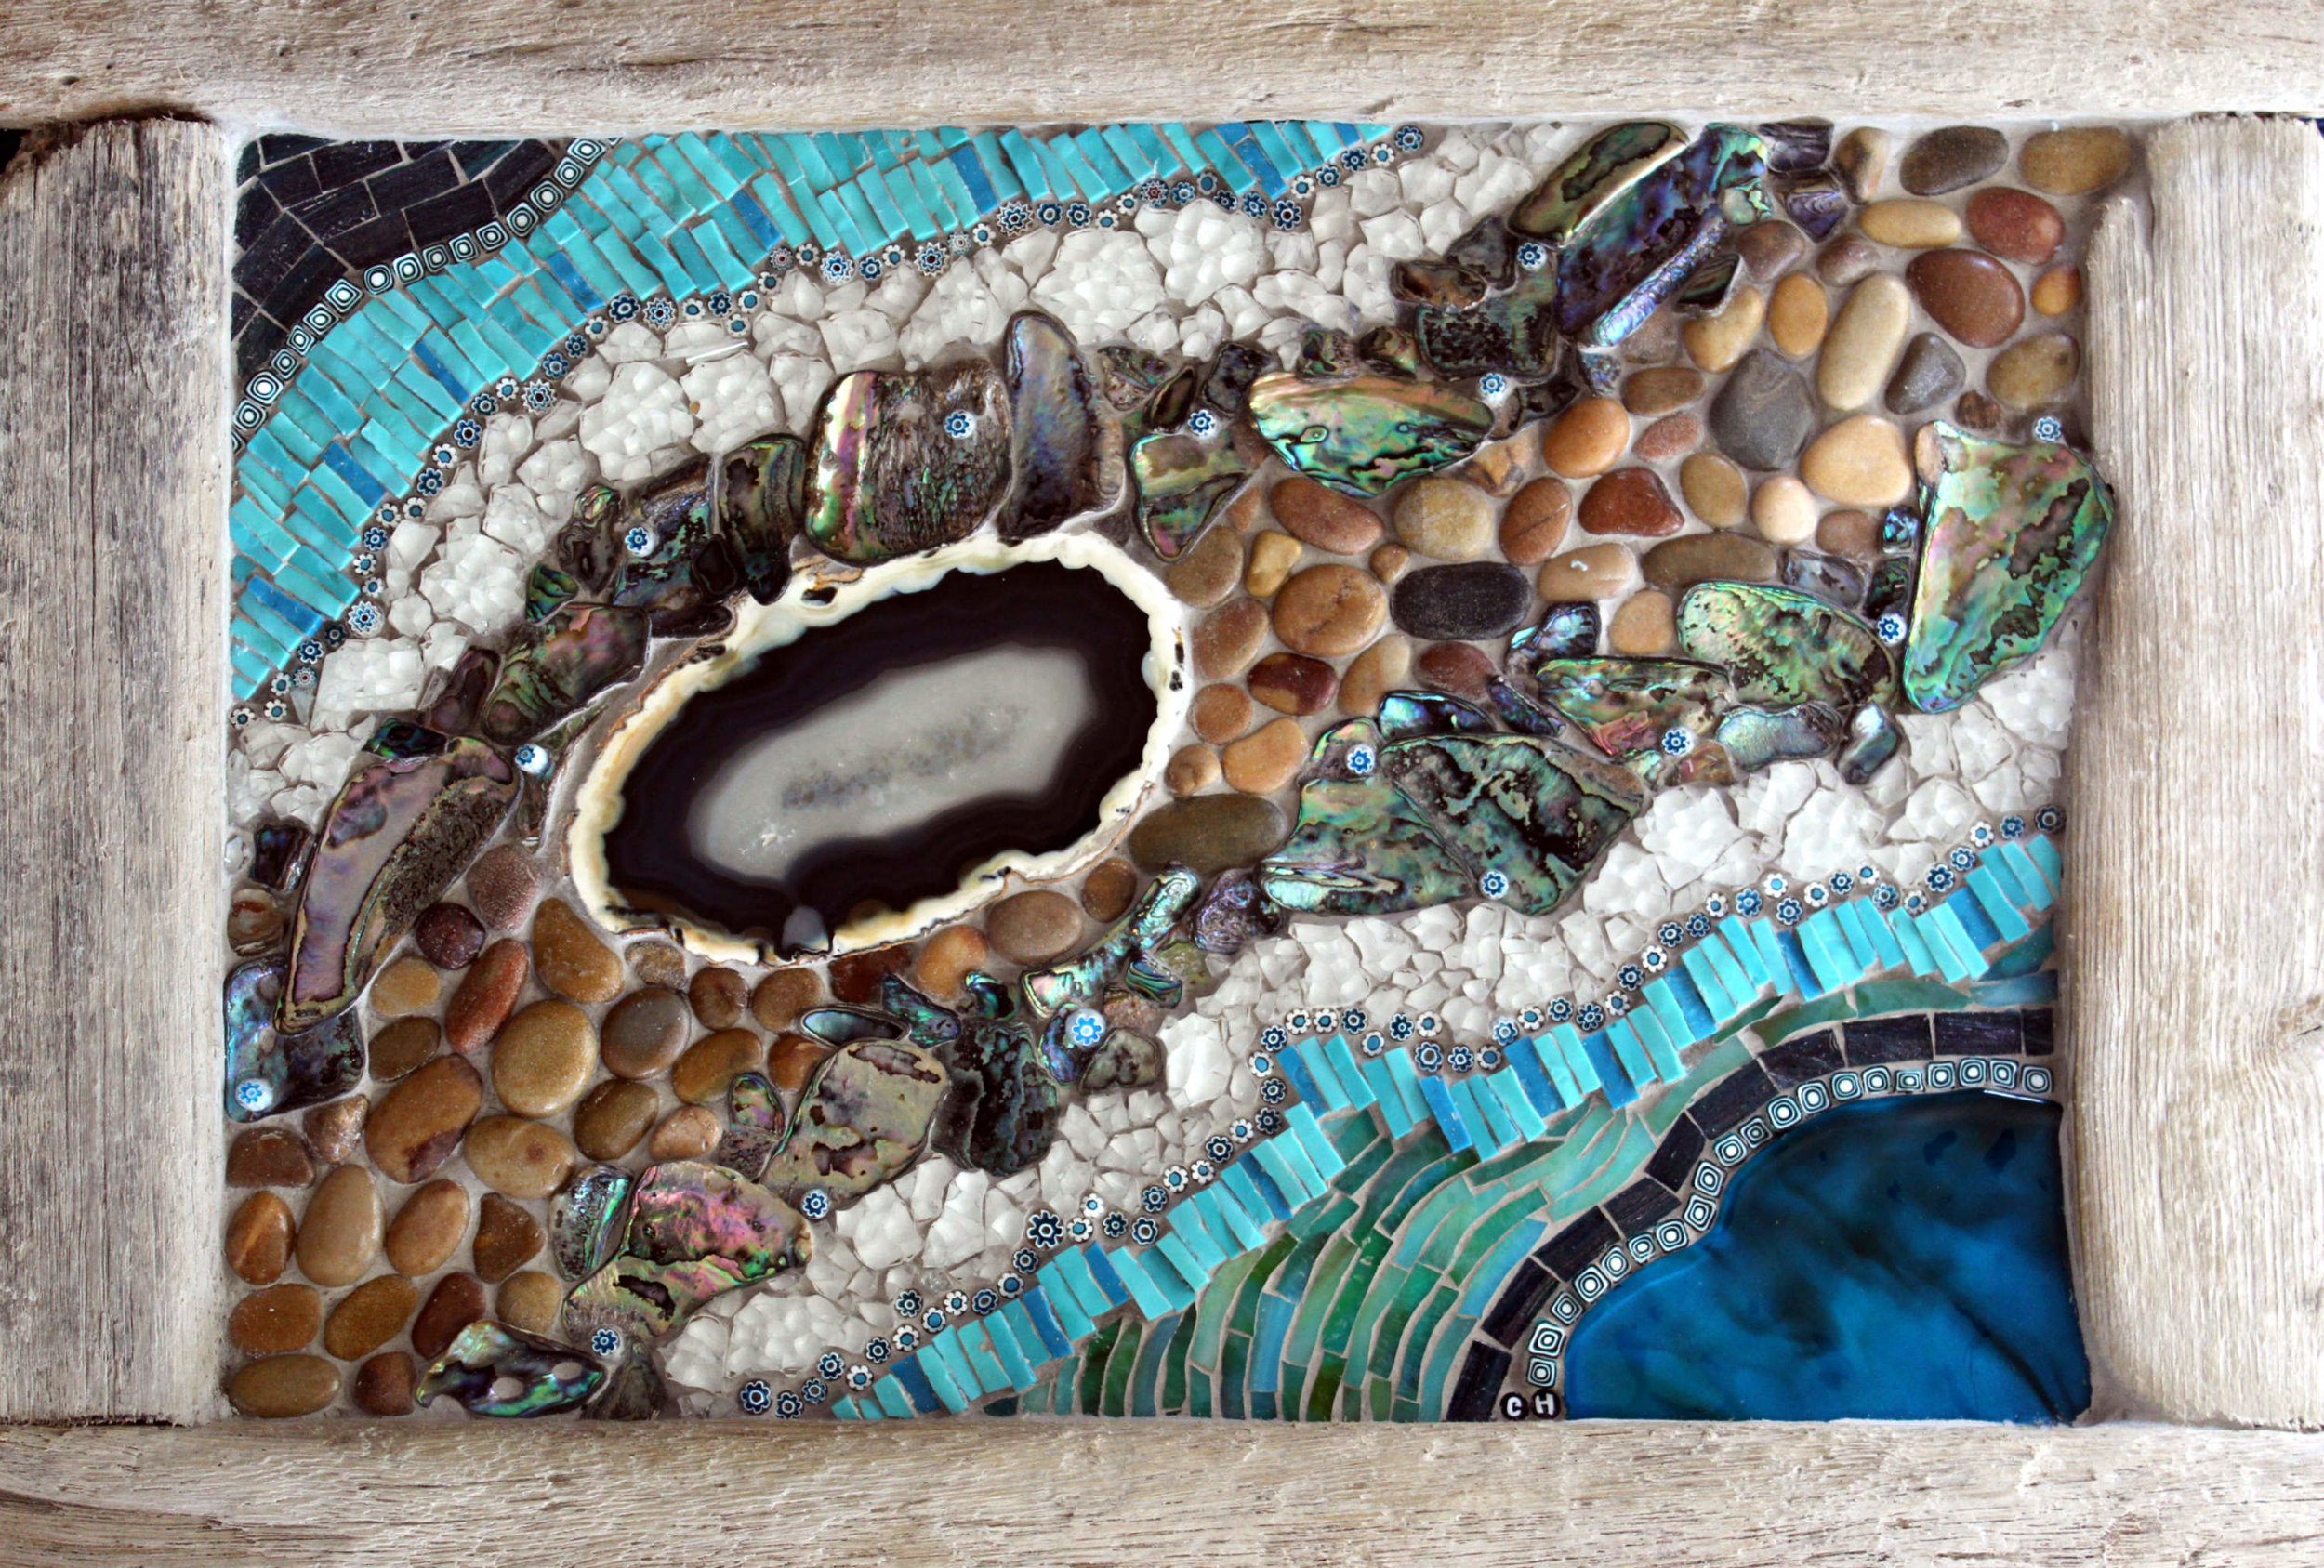 Seventenths (Paua Shell, Agate, Smalti, Stained Glass, Tempered Glass, Pebbles, Millefiori, Driftwood frame)